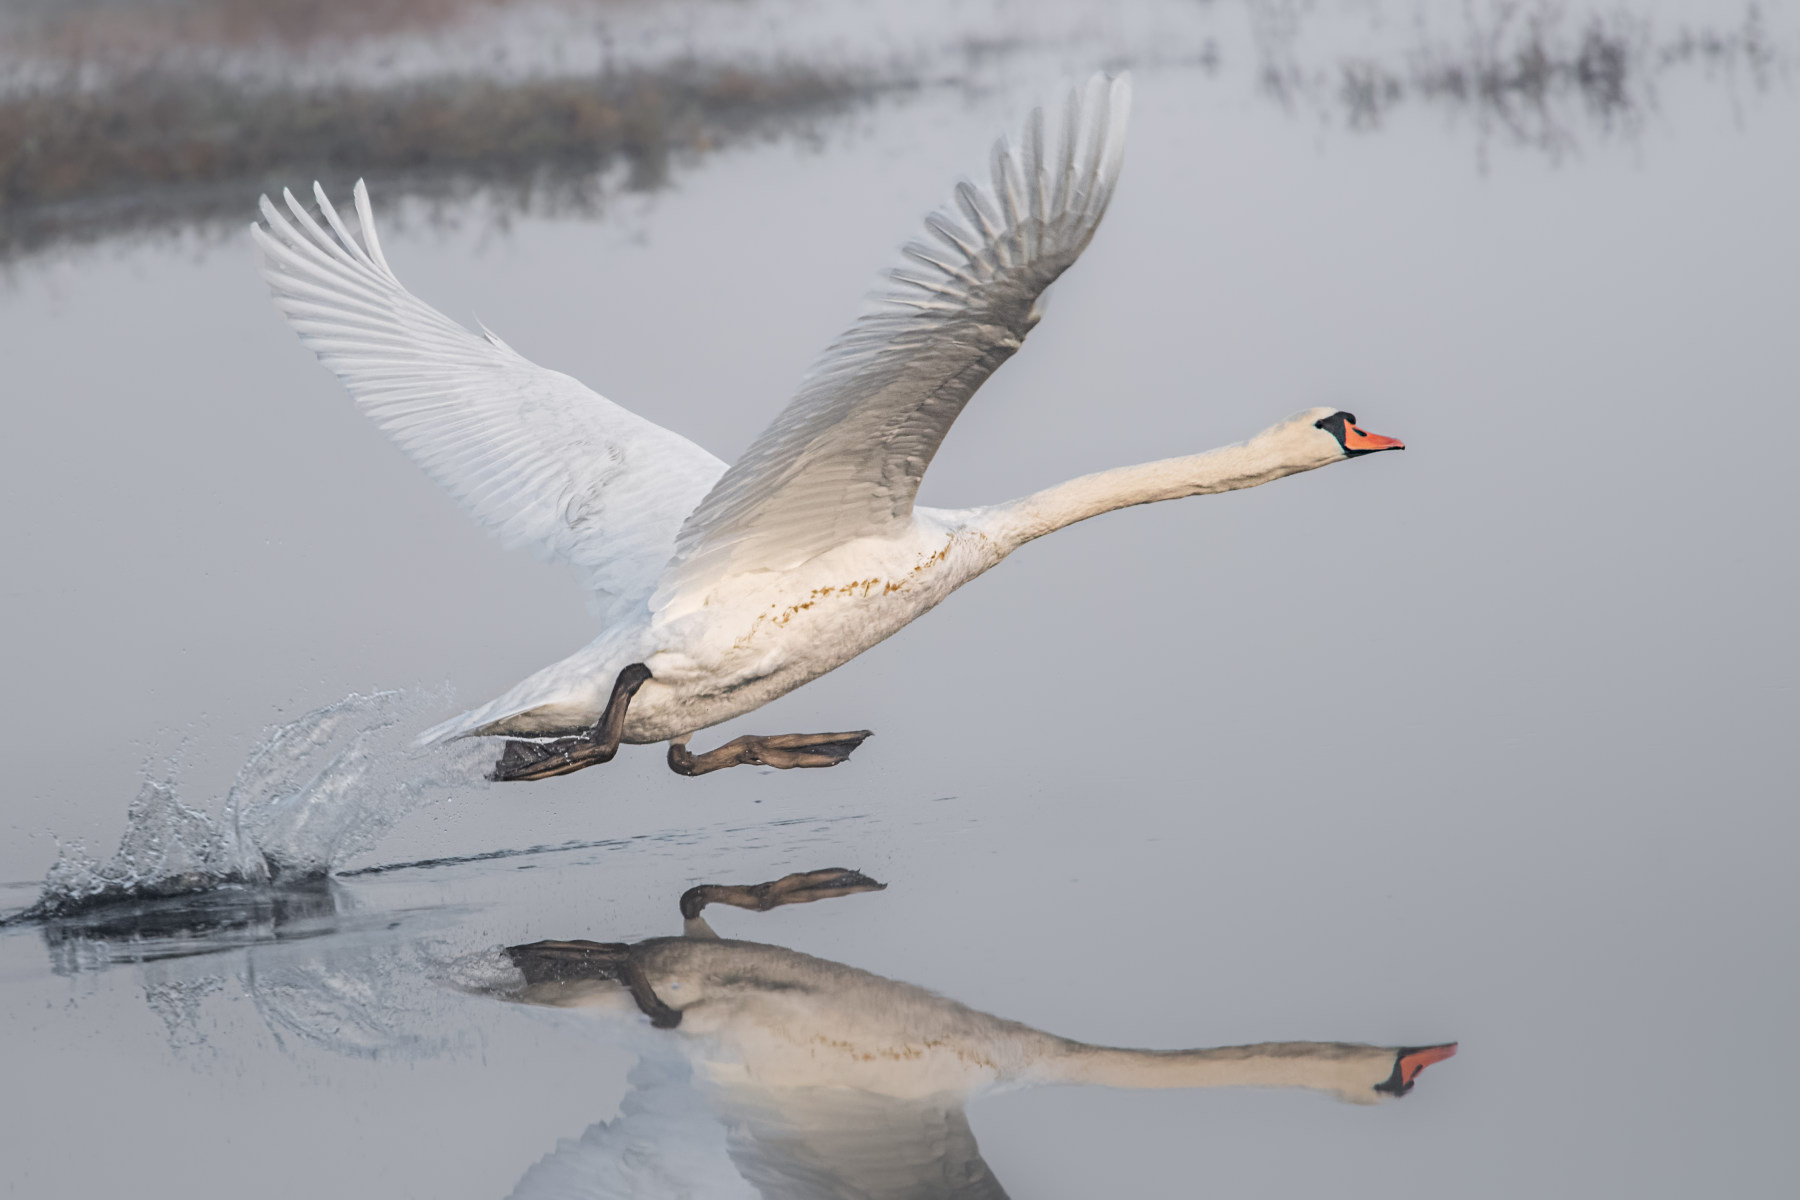 Mute Swan Running on Water to Gain Speed for Takeoff